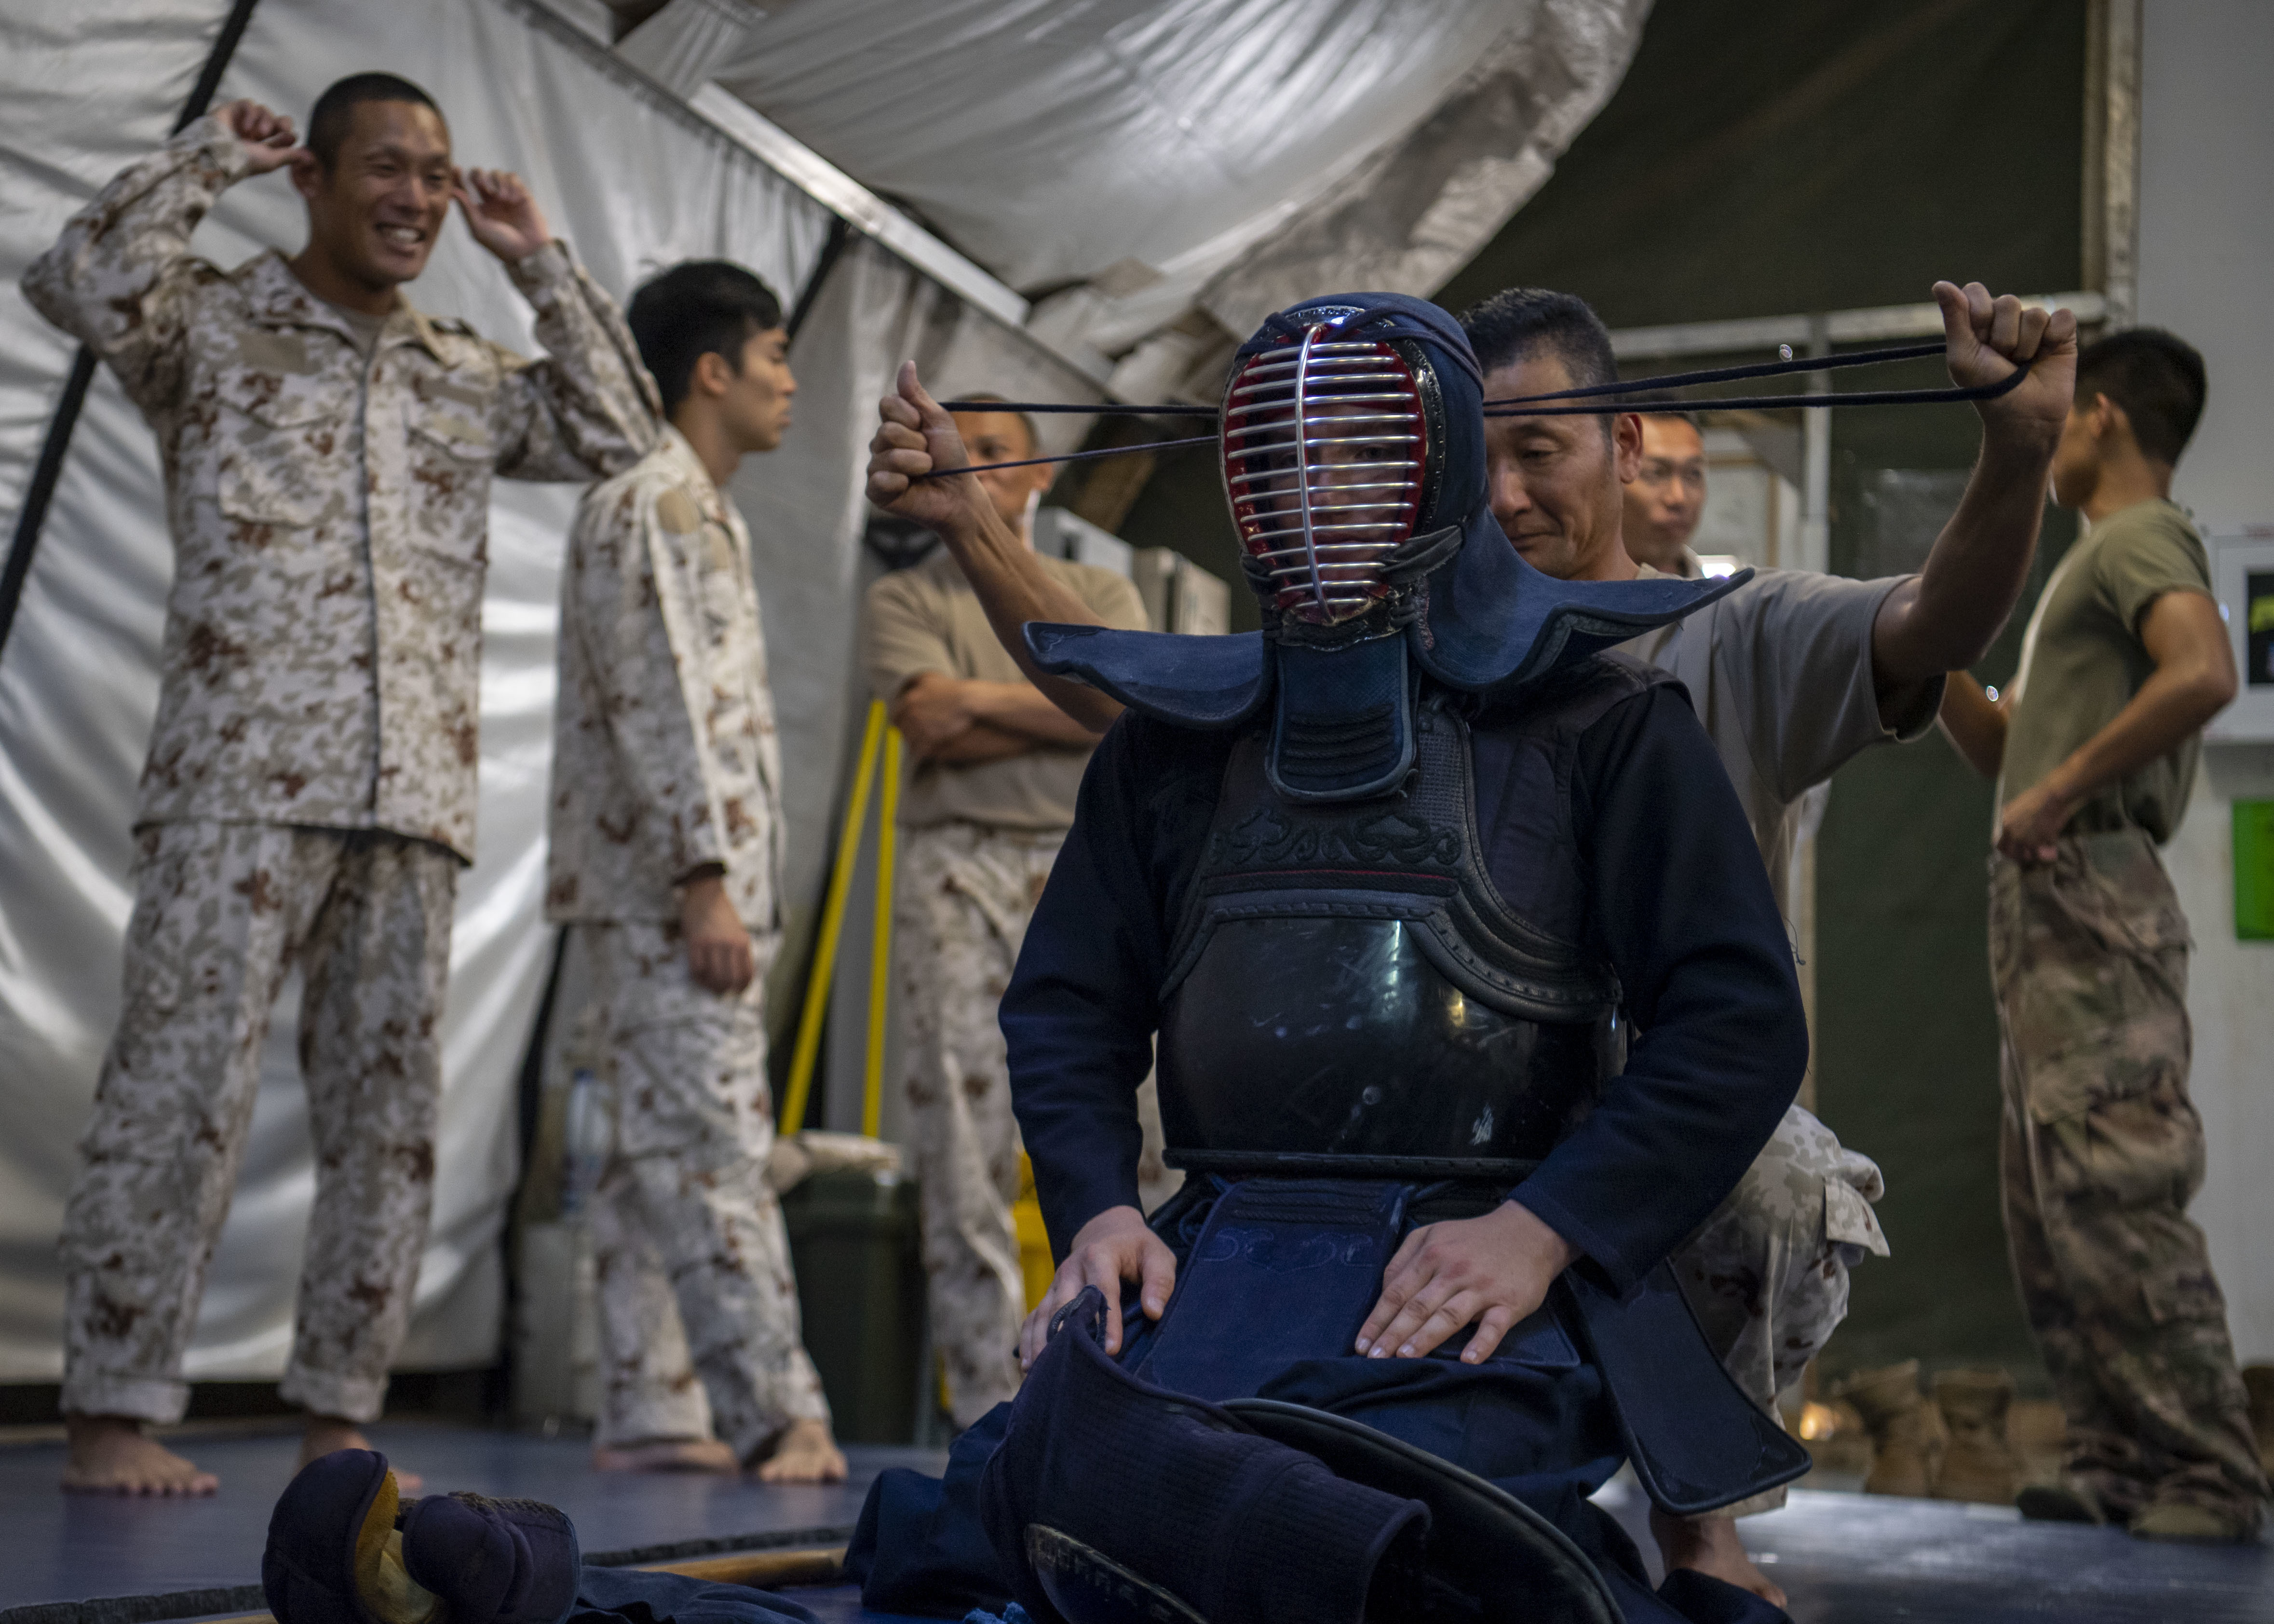 U.S. Army Spc. Davin Gould, infantrymen, 101st Division, 1st Battalion, 26th Infantry Regiment, Task Force Warrior, assigned Combined Joint Task Force-Horn of Africa (CJTF-HOA), is dressed in traditional jukendo attire during a combatives exchange with the Japanese Ground Self-Defense Force (JGSDF) at Camp Lemonnier, Djibouti, July 1, 2019. The purpose of the joint exchange was to share Japanese combative techniques and forge relationships between CJTF-HOA and the JGSDF. (U.S. Air Force photo by Staff Sgt. J.D. Strong II) (U.S. Air Force photo by Staff Sgt. J.D. Strong II)